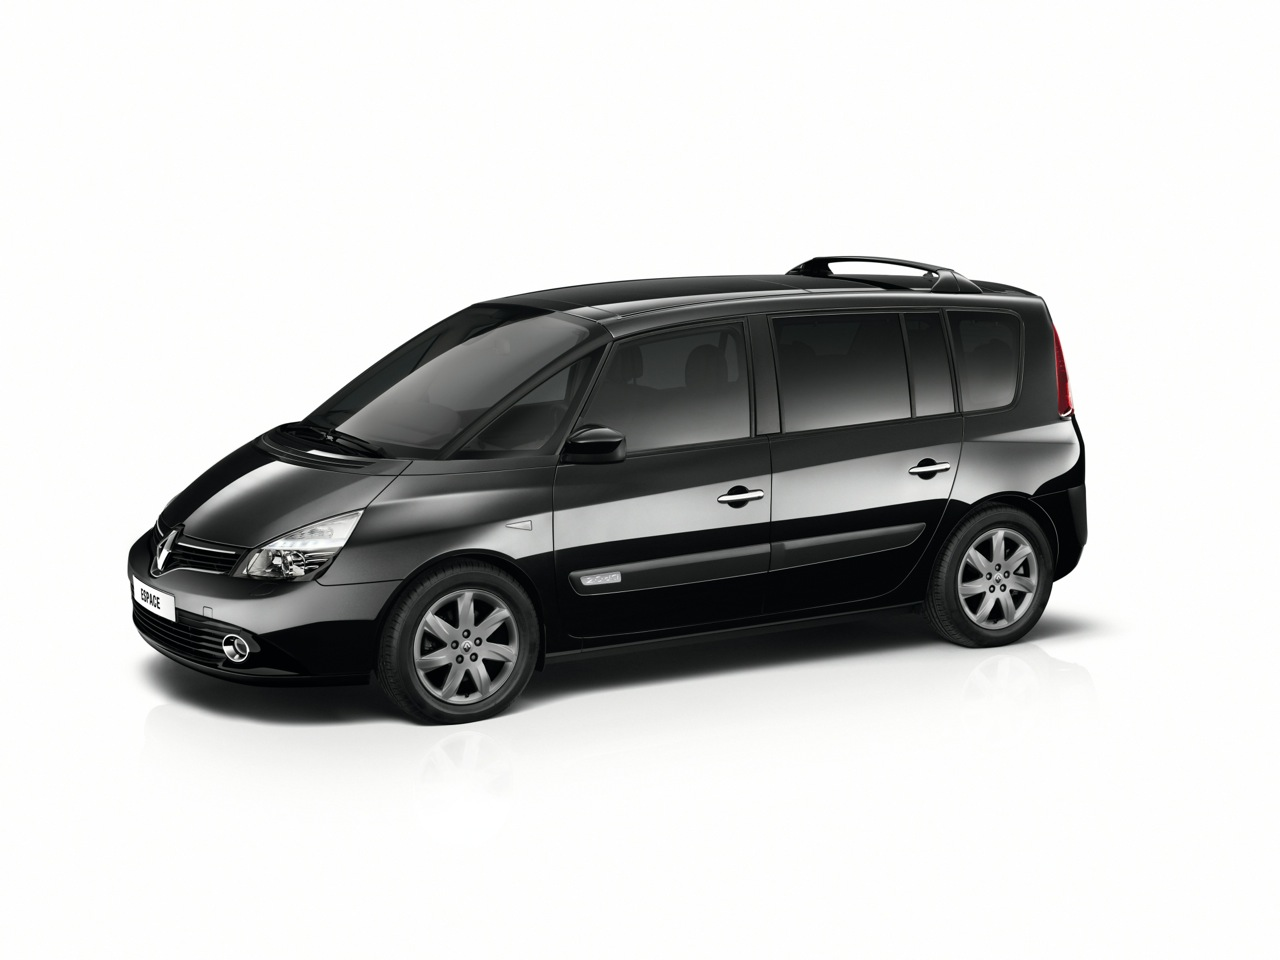 renault espace restyling 2013 6 15. Black Bedroom Furniture Sets. Home Design Ideas